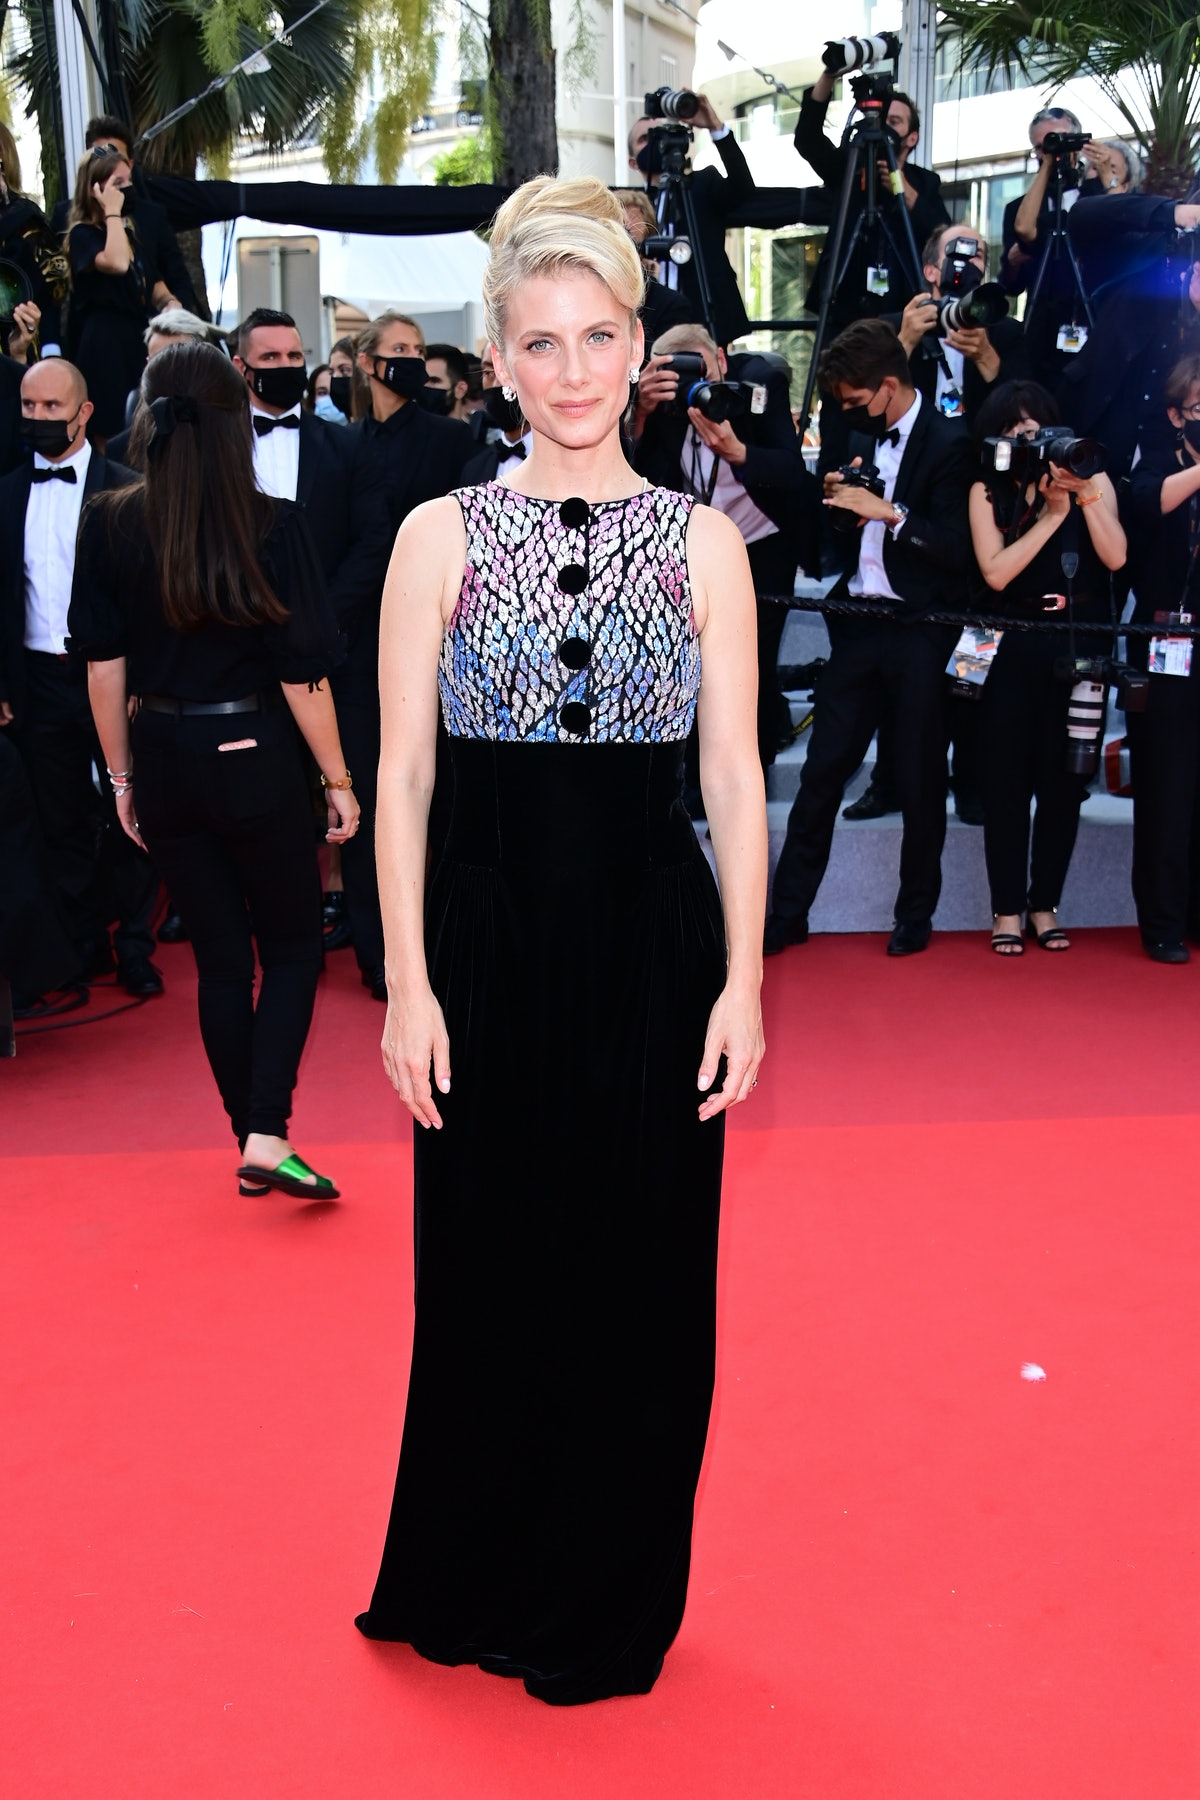 """CANNES, FRANCE - JULY 17: Melanie Laurent attends the final screening of """"OSS 117: From Africa With Love"""" and closing ceremony during the 74th annual Cannes Film Festival on July 17, 2021 in Cannes, France. (Photo by Daniele Venturelli/WireImage)"""